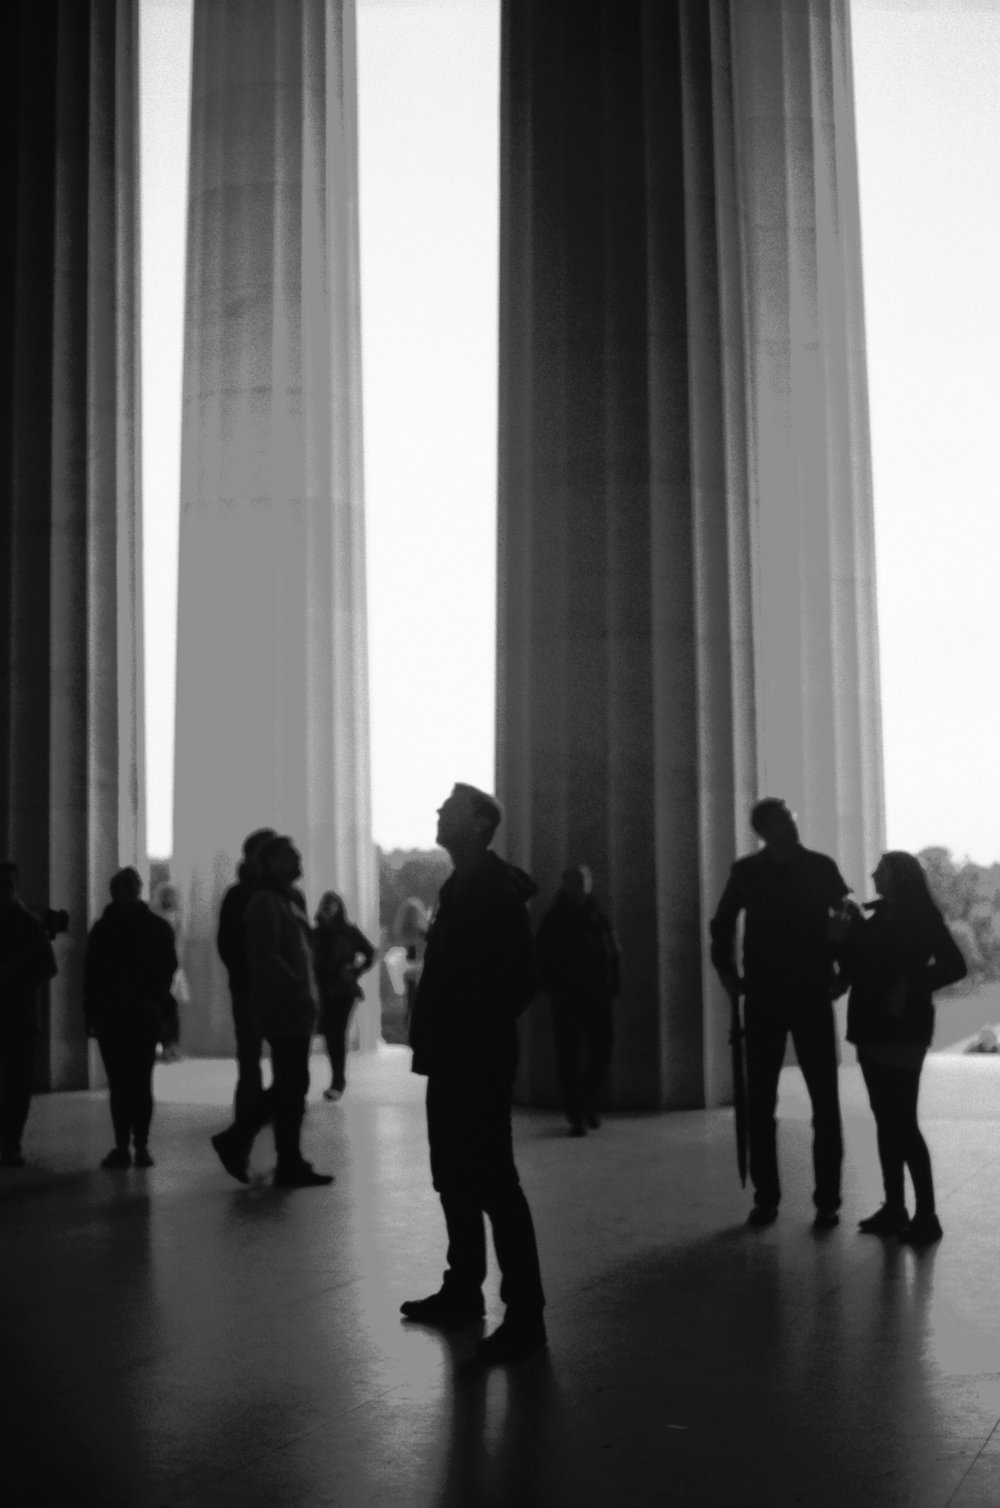 Taking in the monuments.